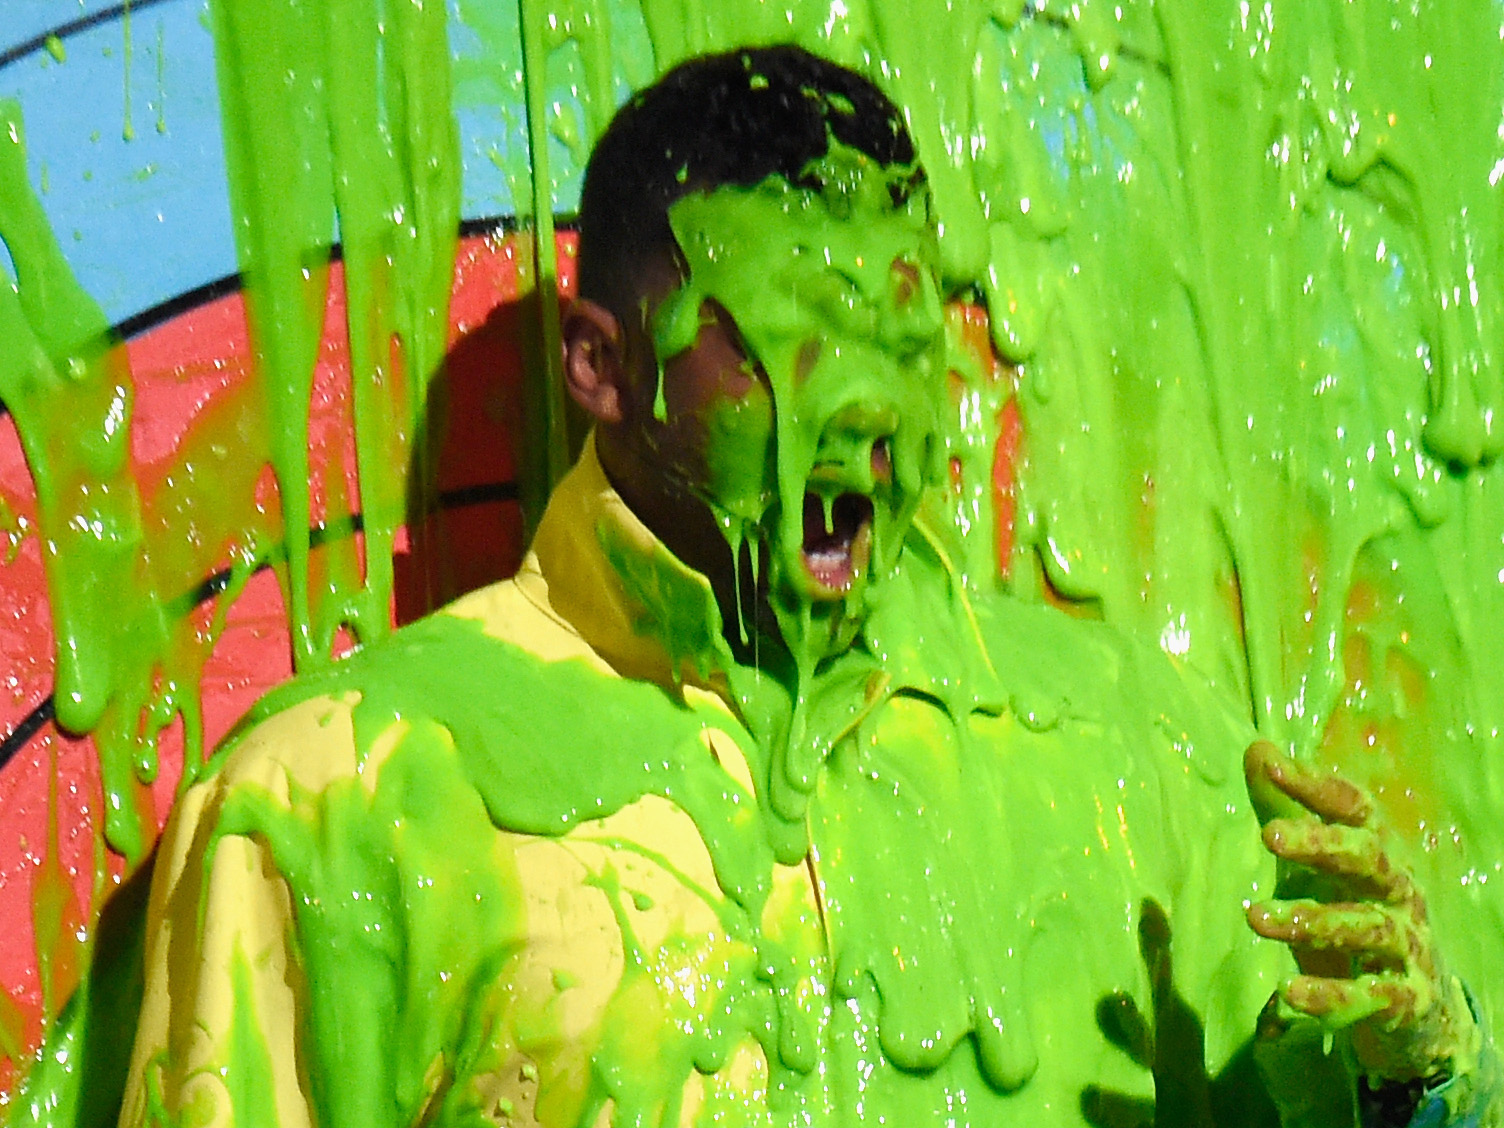 Russell Wilson gets slimed onstage